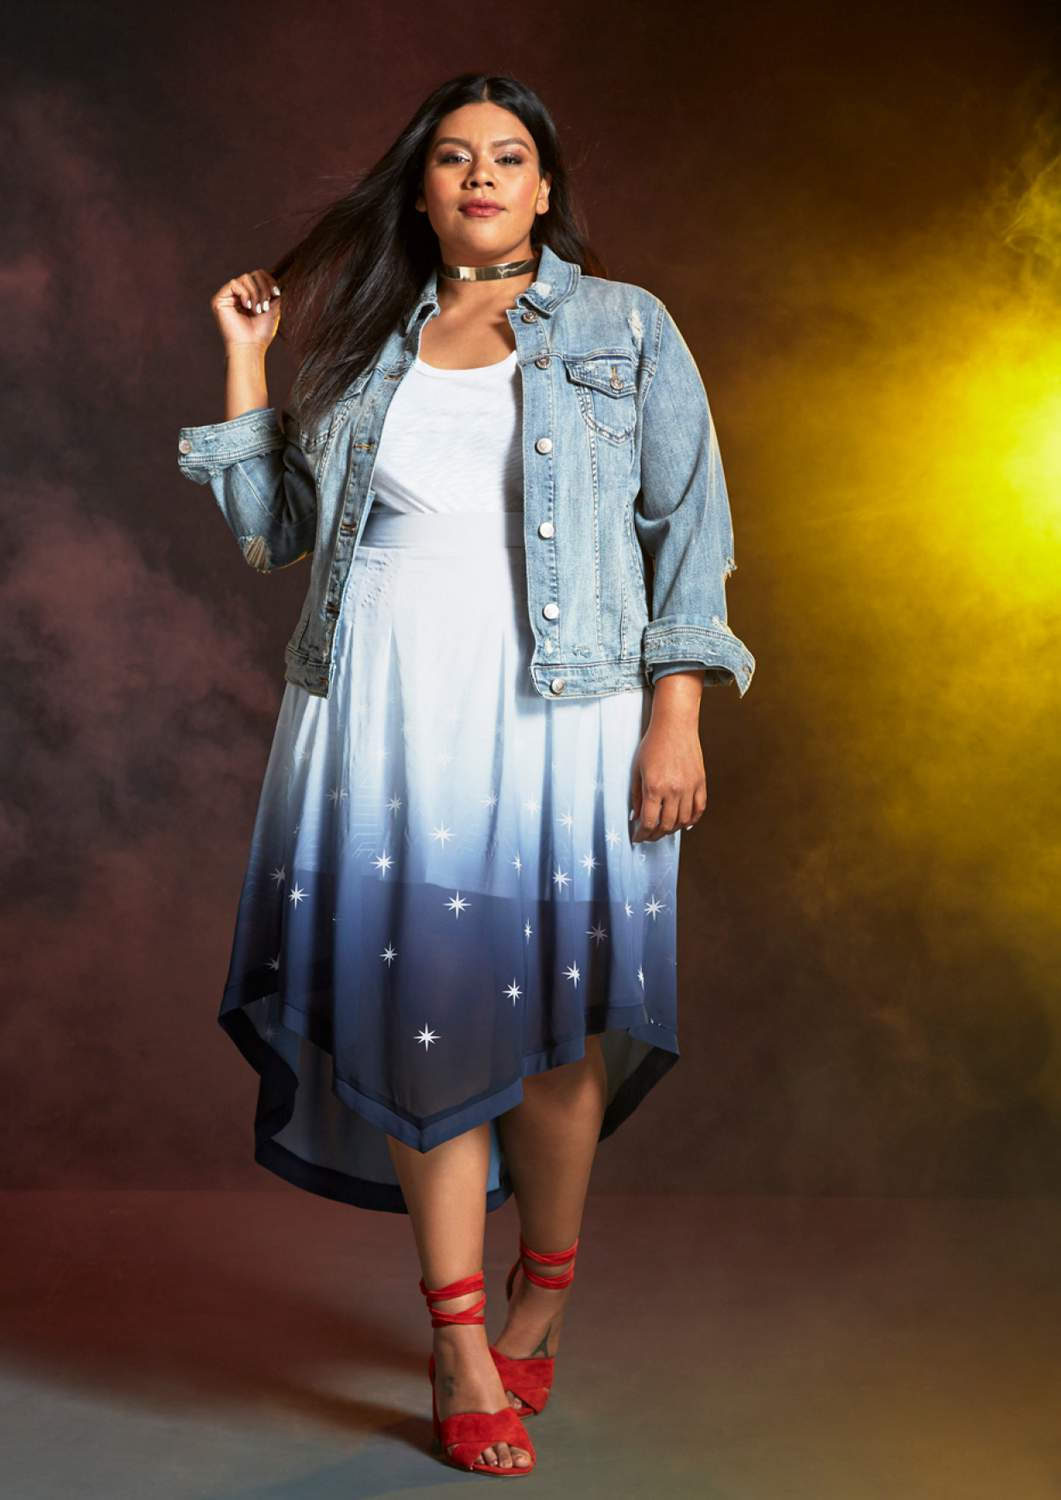 Torrid Launches a Limited-Edition Wonder Woman Collection!